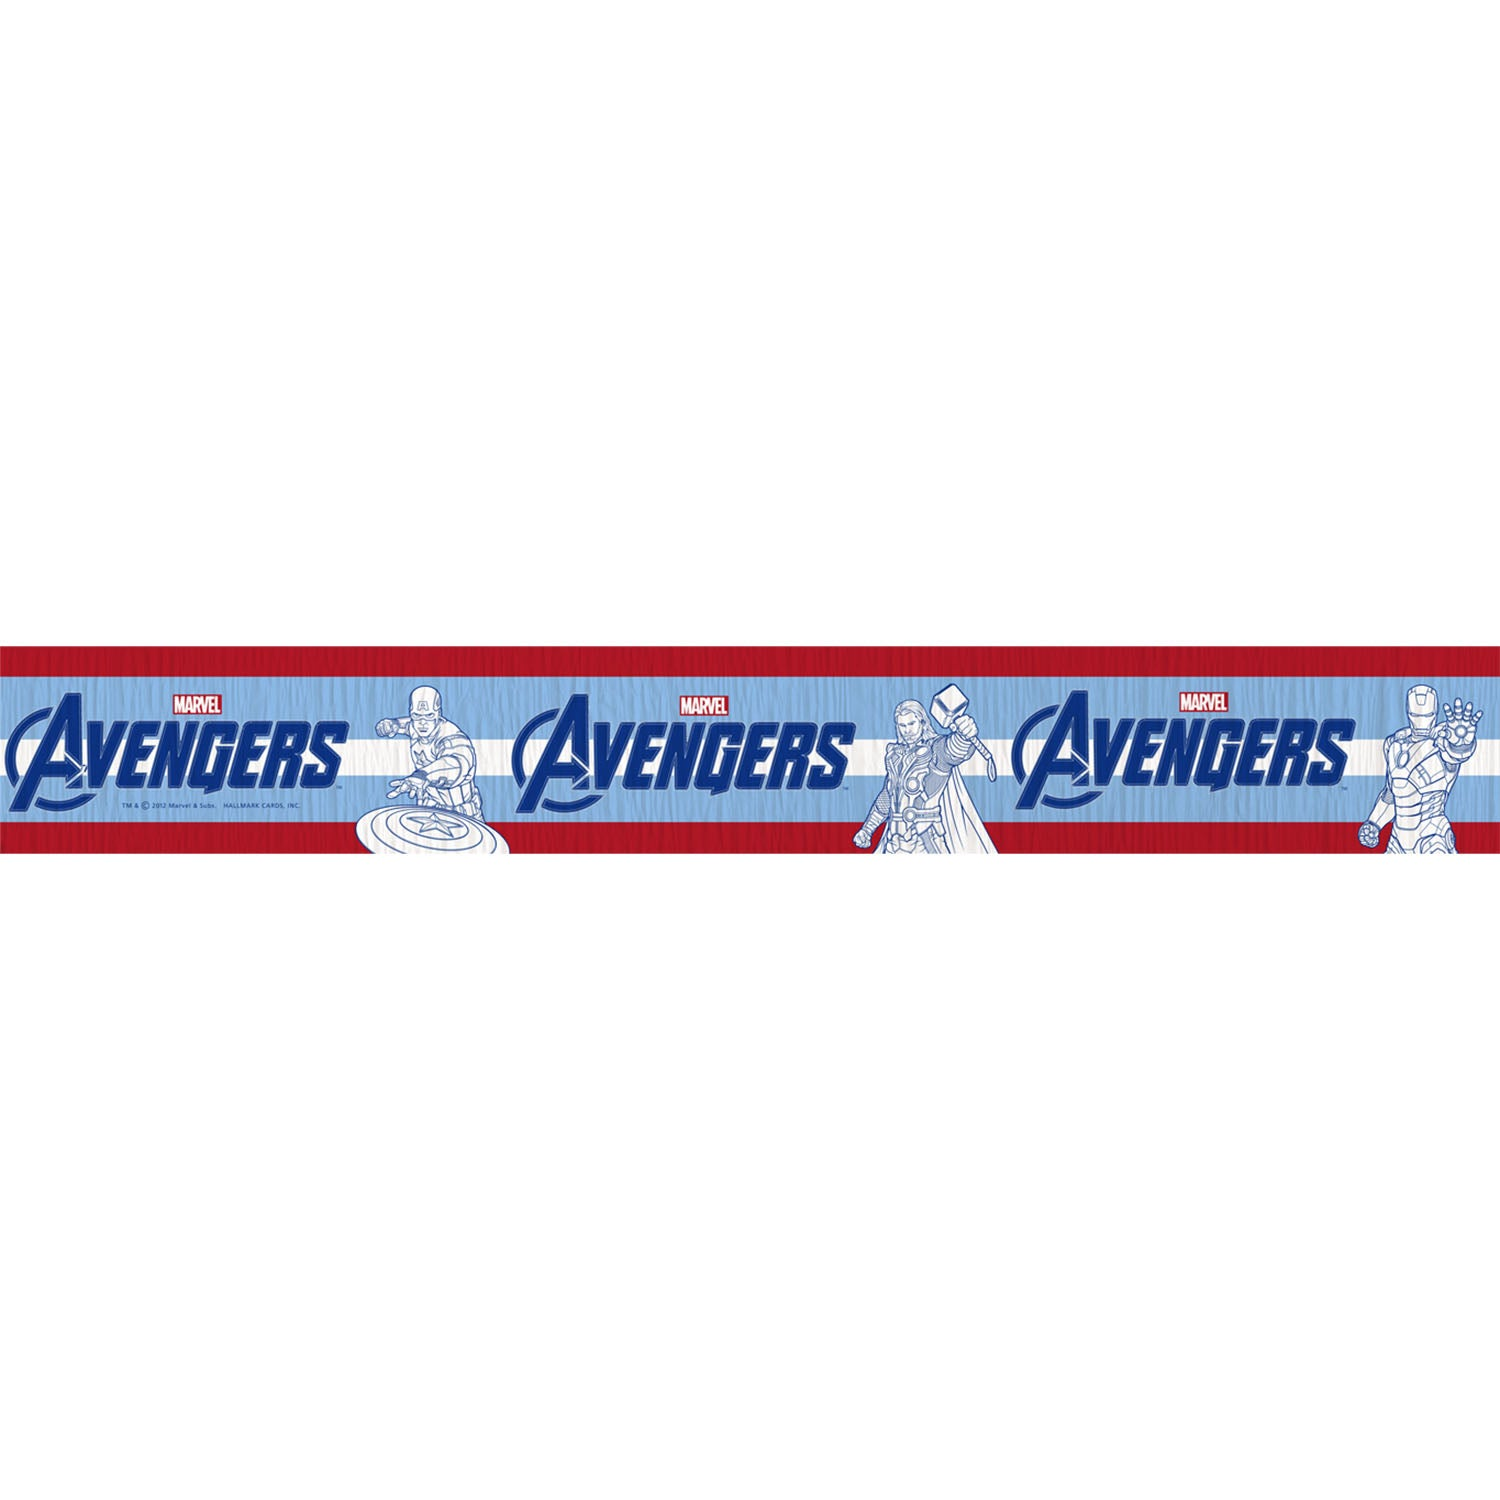 Avengers Party Supplies - Streamer Decorations